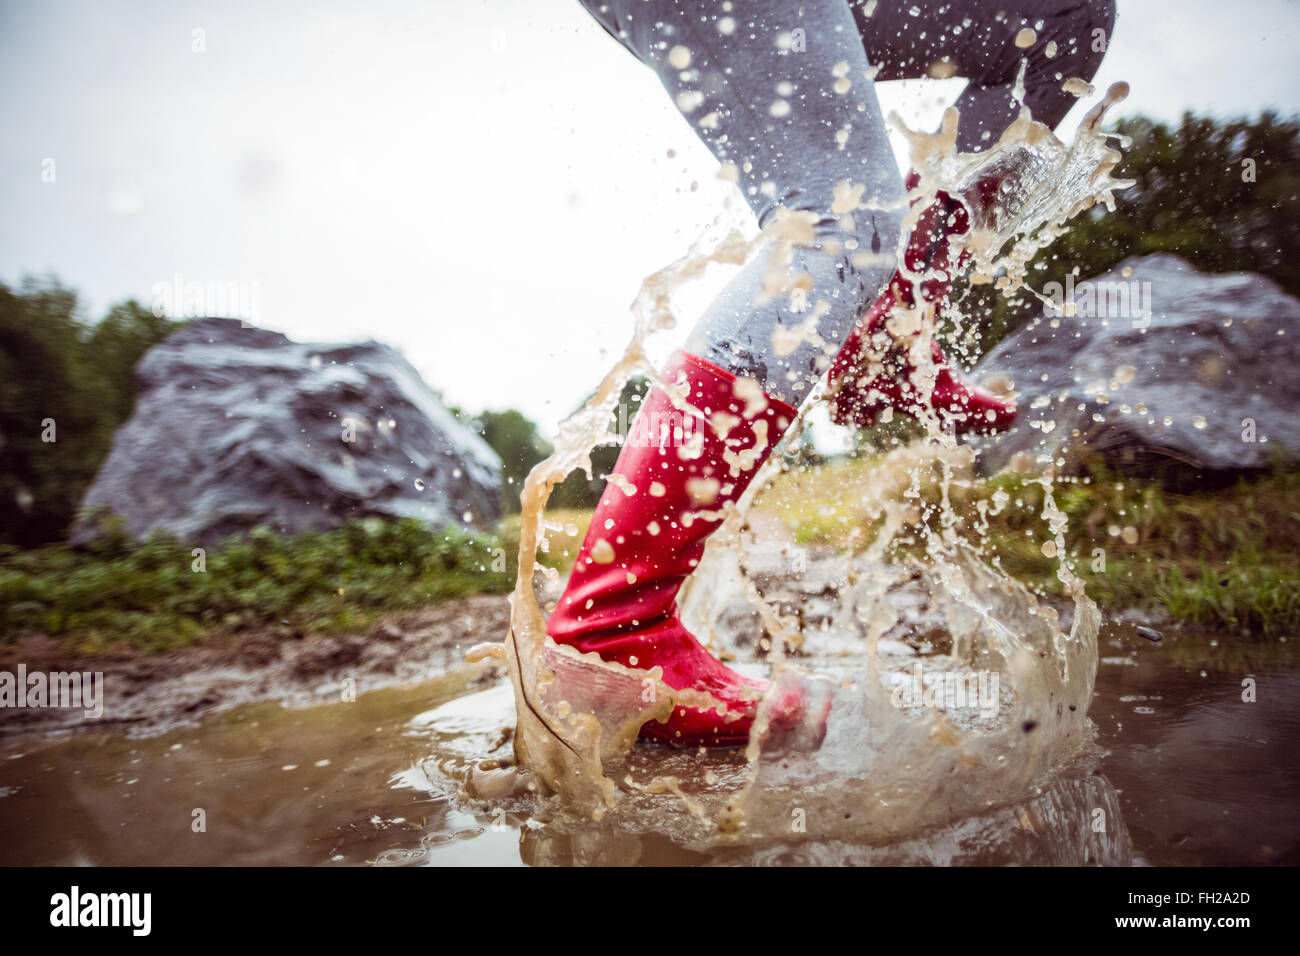 Woman splashing in muddy puddles - Stock Image